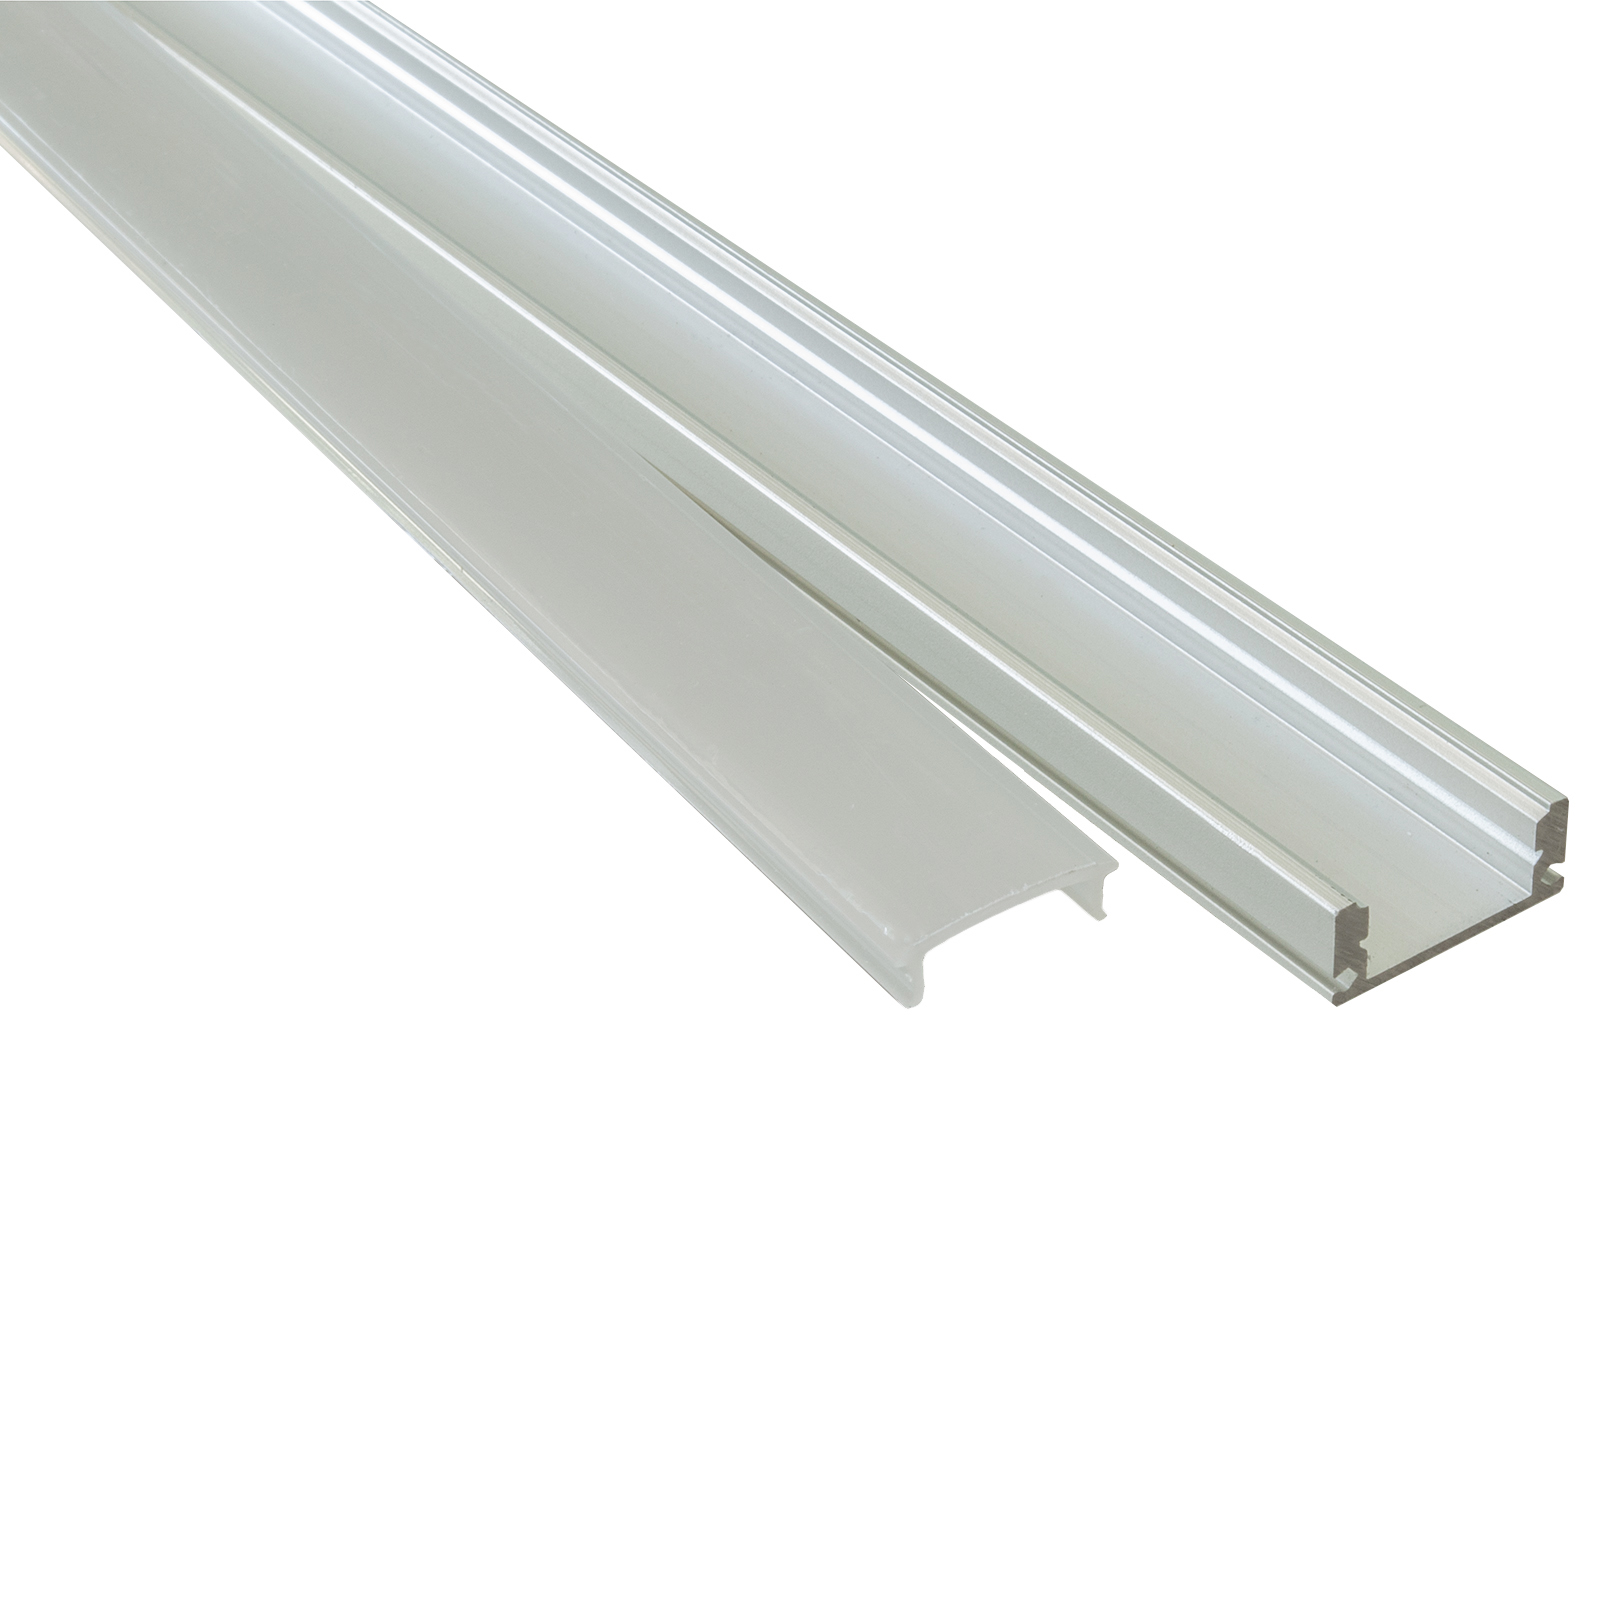 Profile aluminium 2m U FLAT surfaces, flat strips, LED rigid bar cover opaque